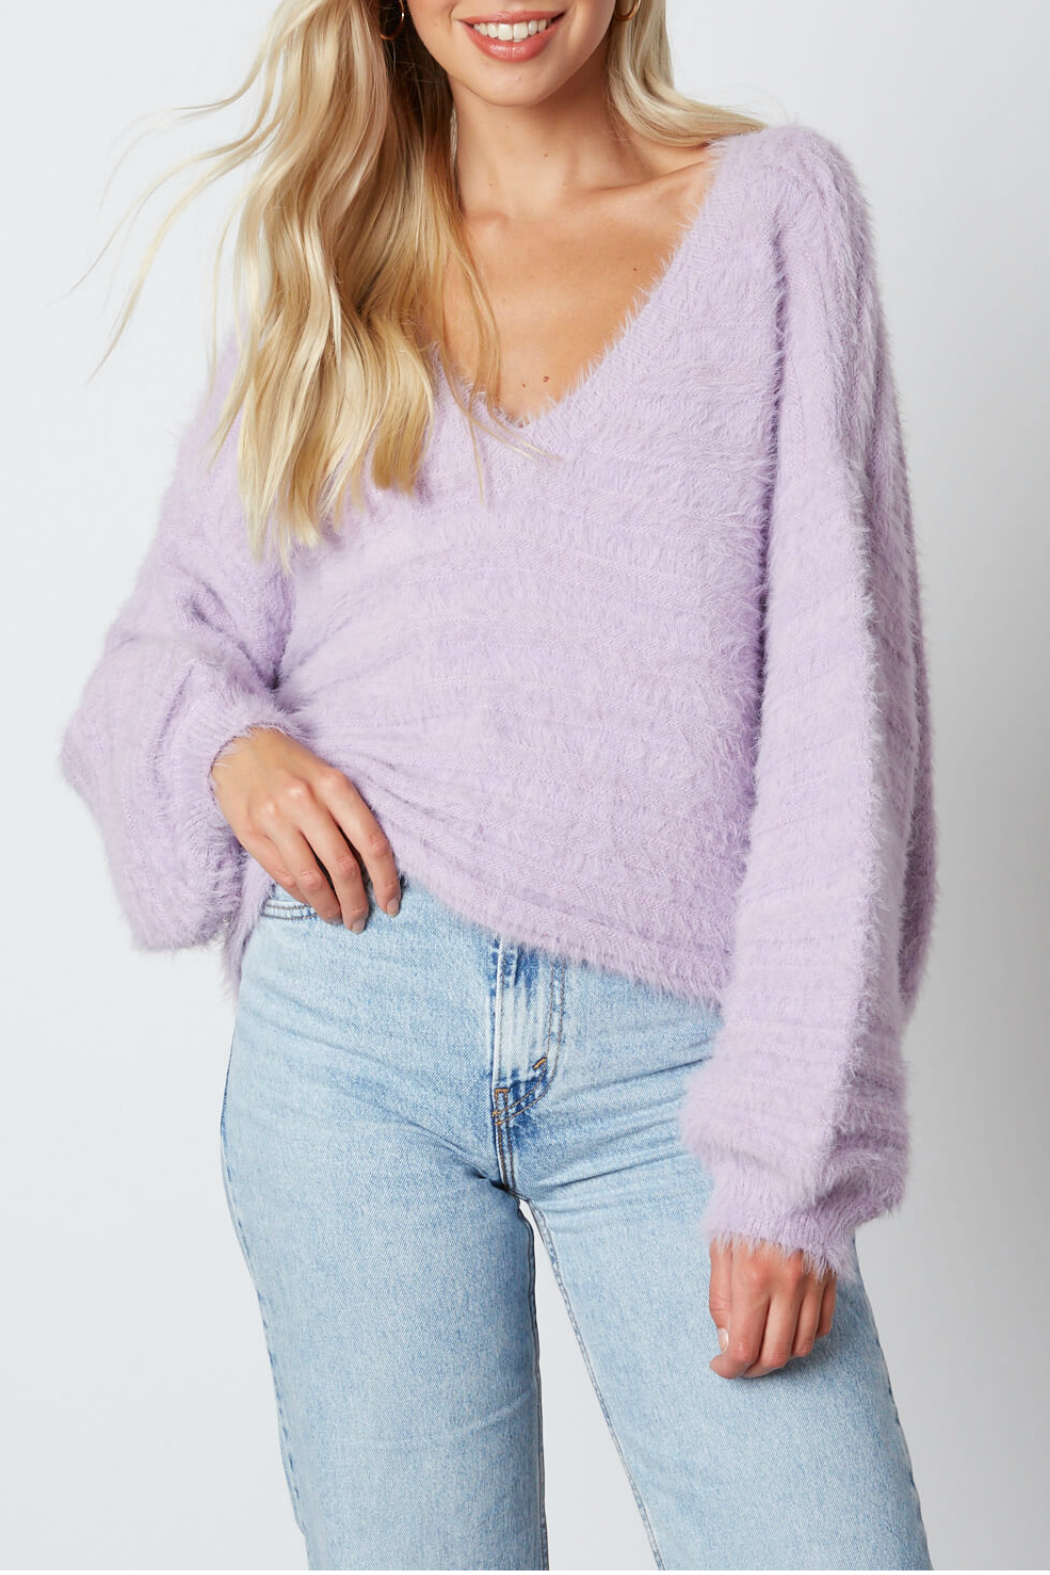 Cotton Candy LA Fuzzy sweater - Front Cropped Image